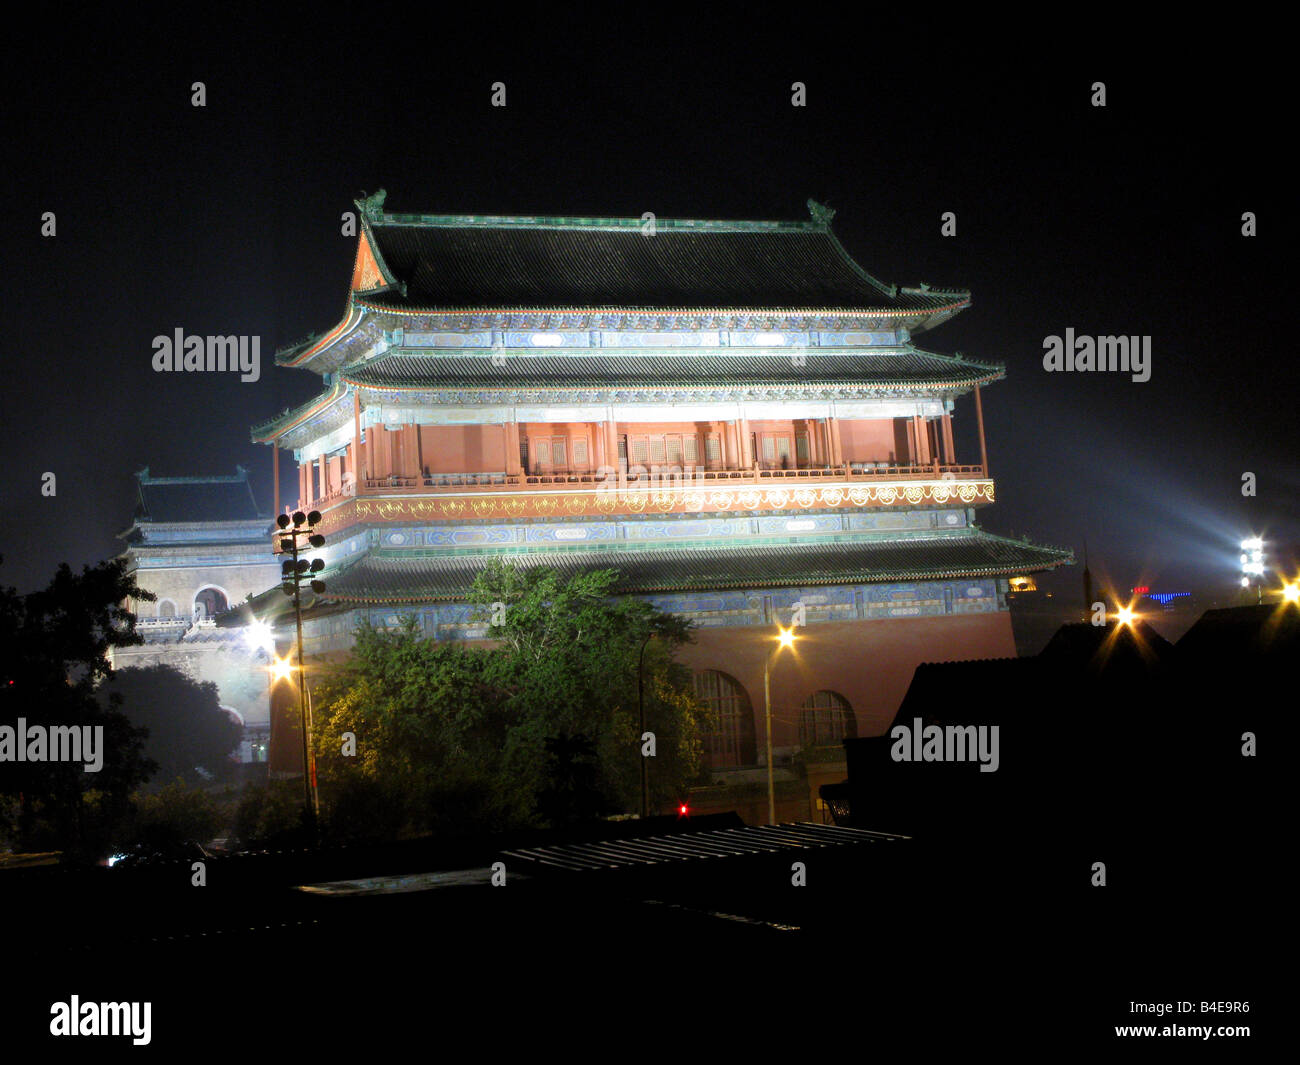 The Yuan Dynasty Bell and Drum Towers at night in the Shichahai Hutong district of Beijing China - Stock Image